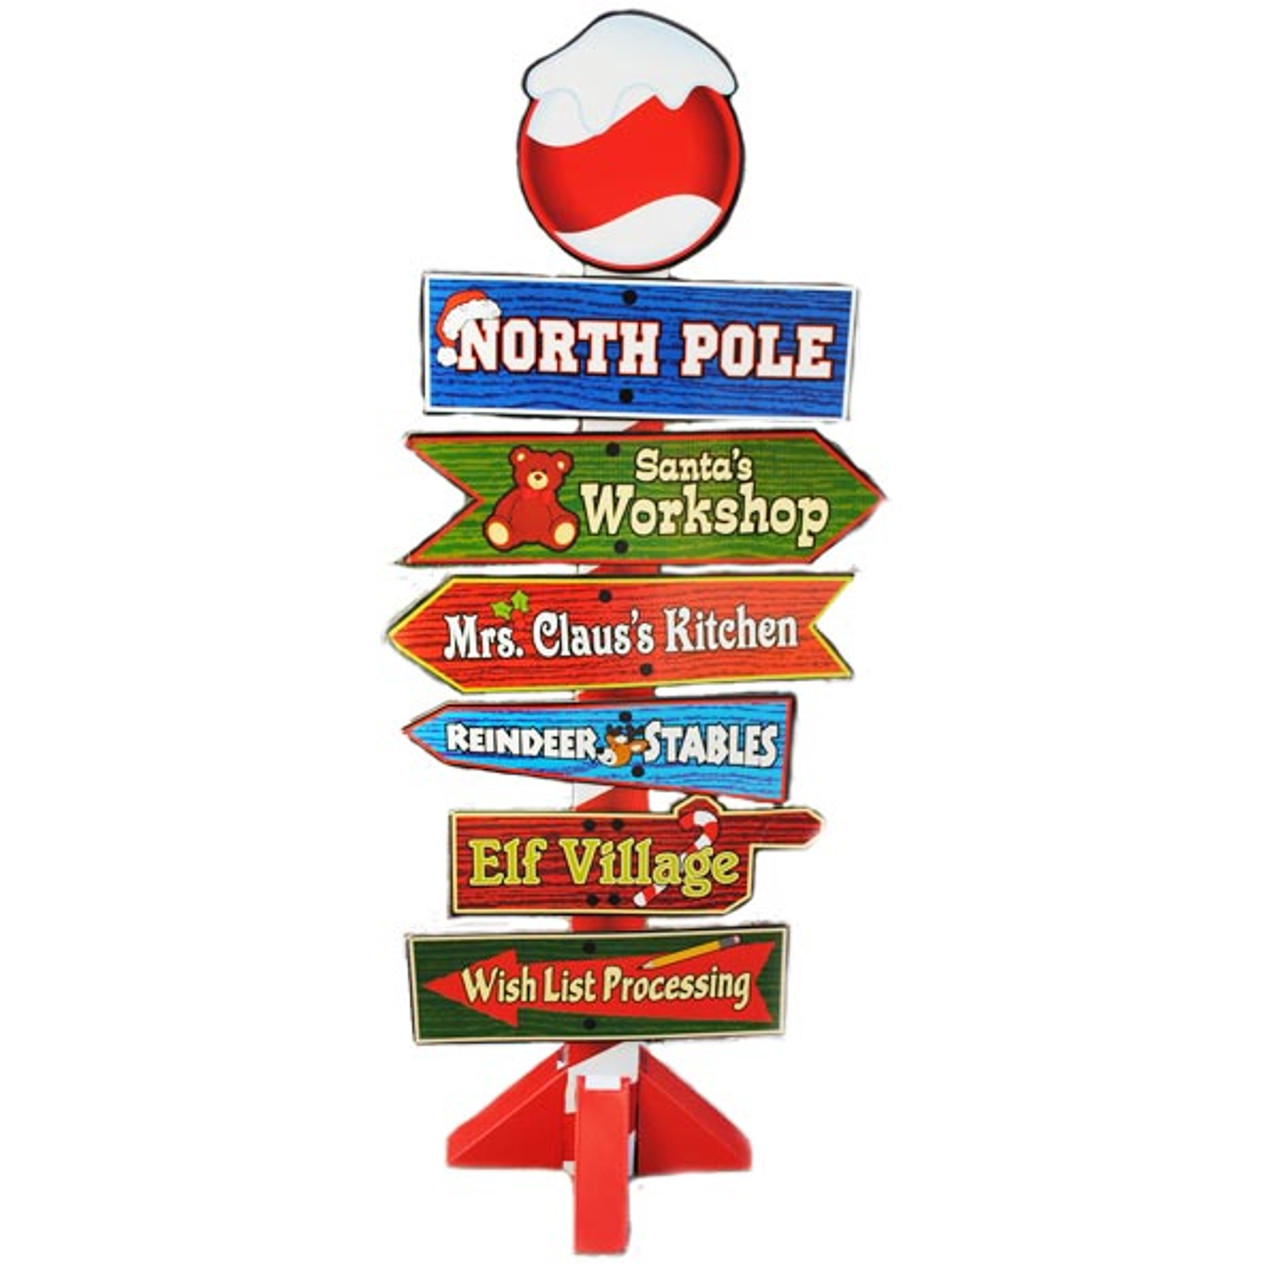 sold out north pole christmas decoration cardboard sign - North Pole Christmas Decorations